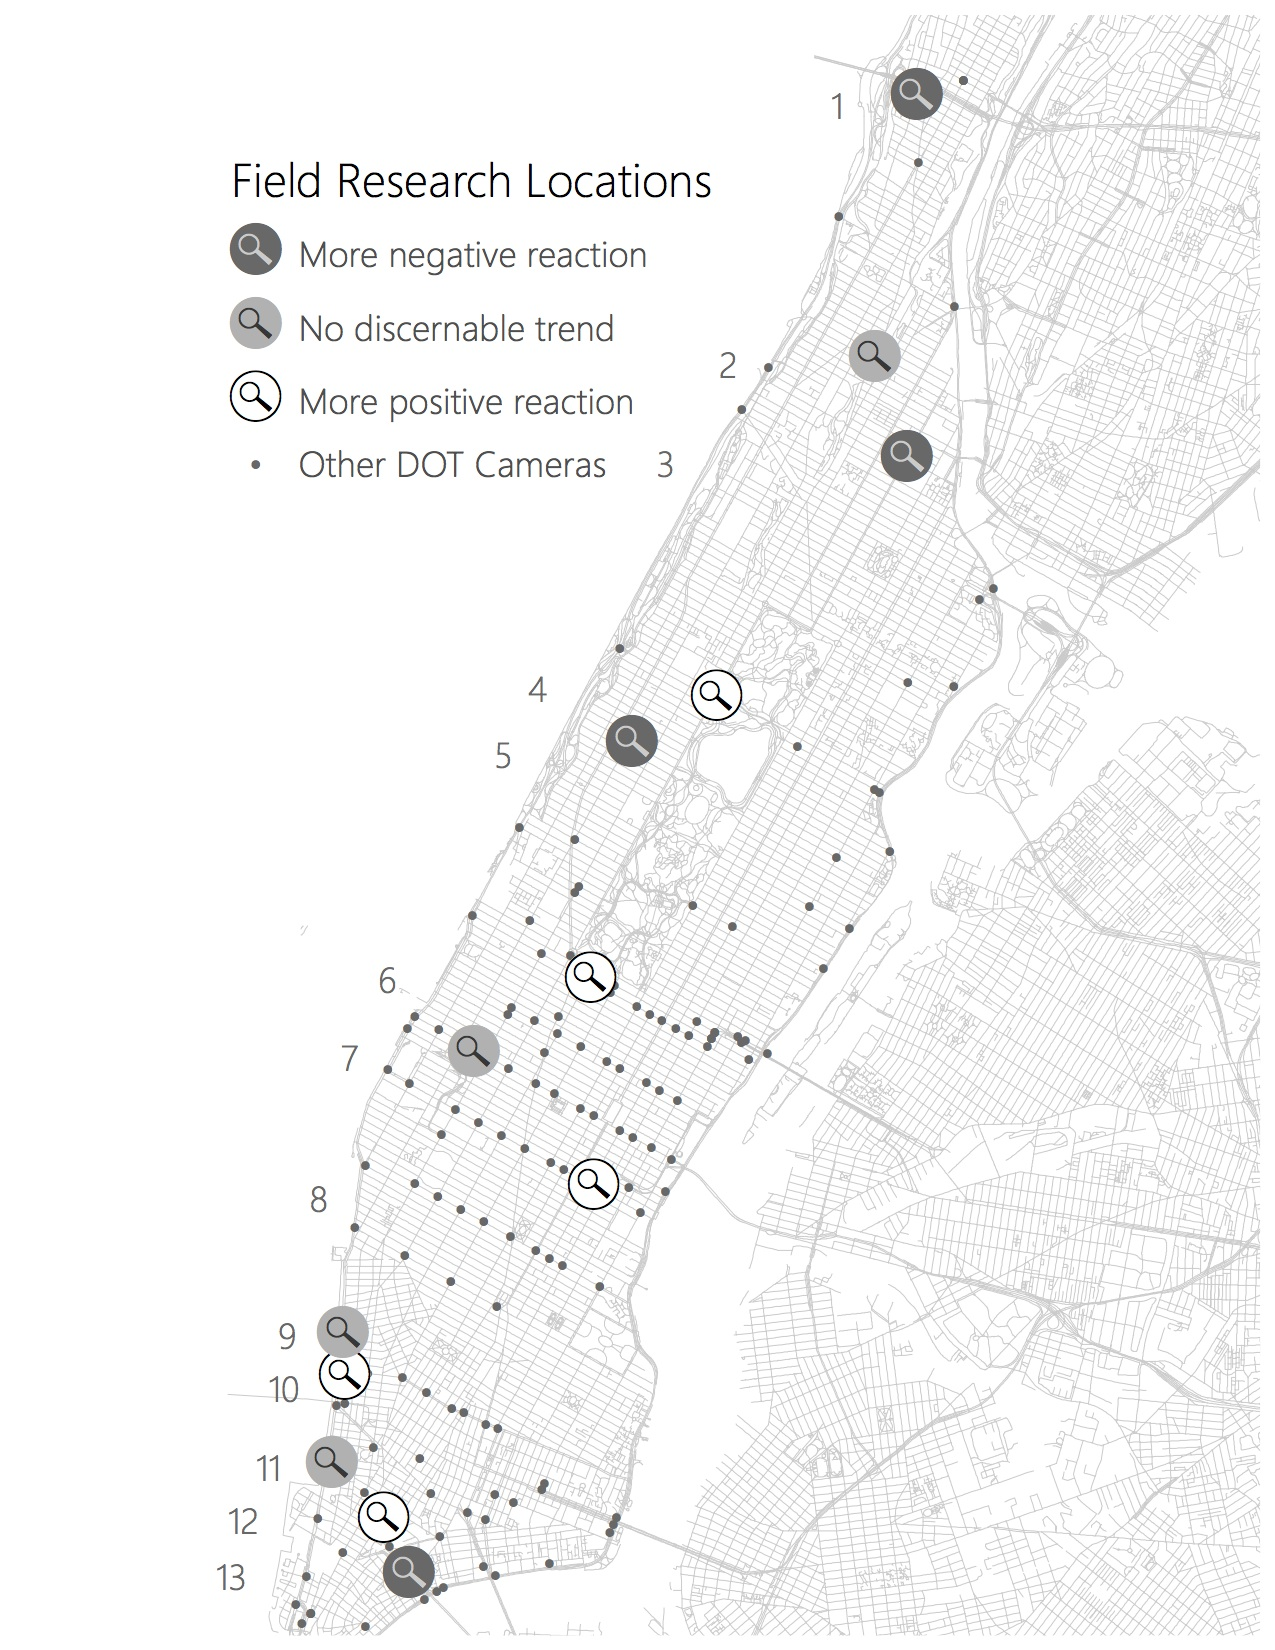 A map of places in Manhattan where respondents have more favorable reactions to NYPD surveillance.